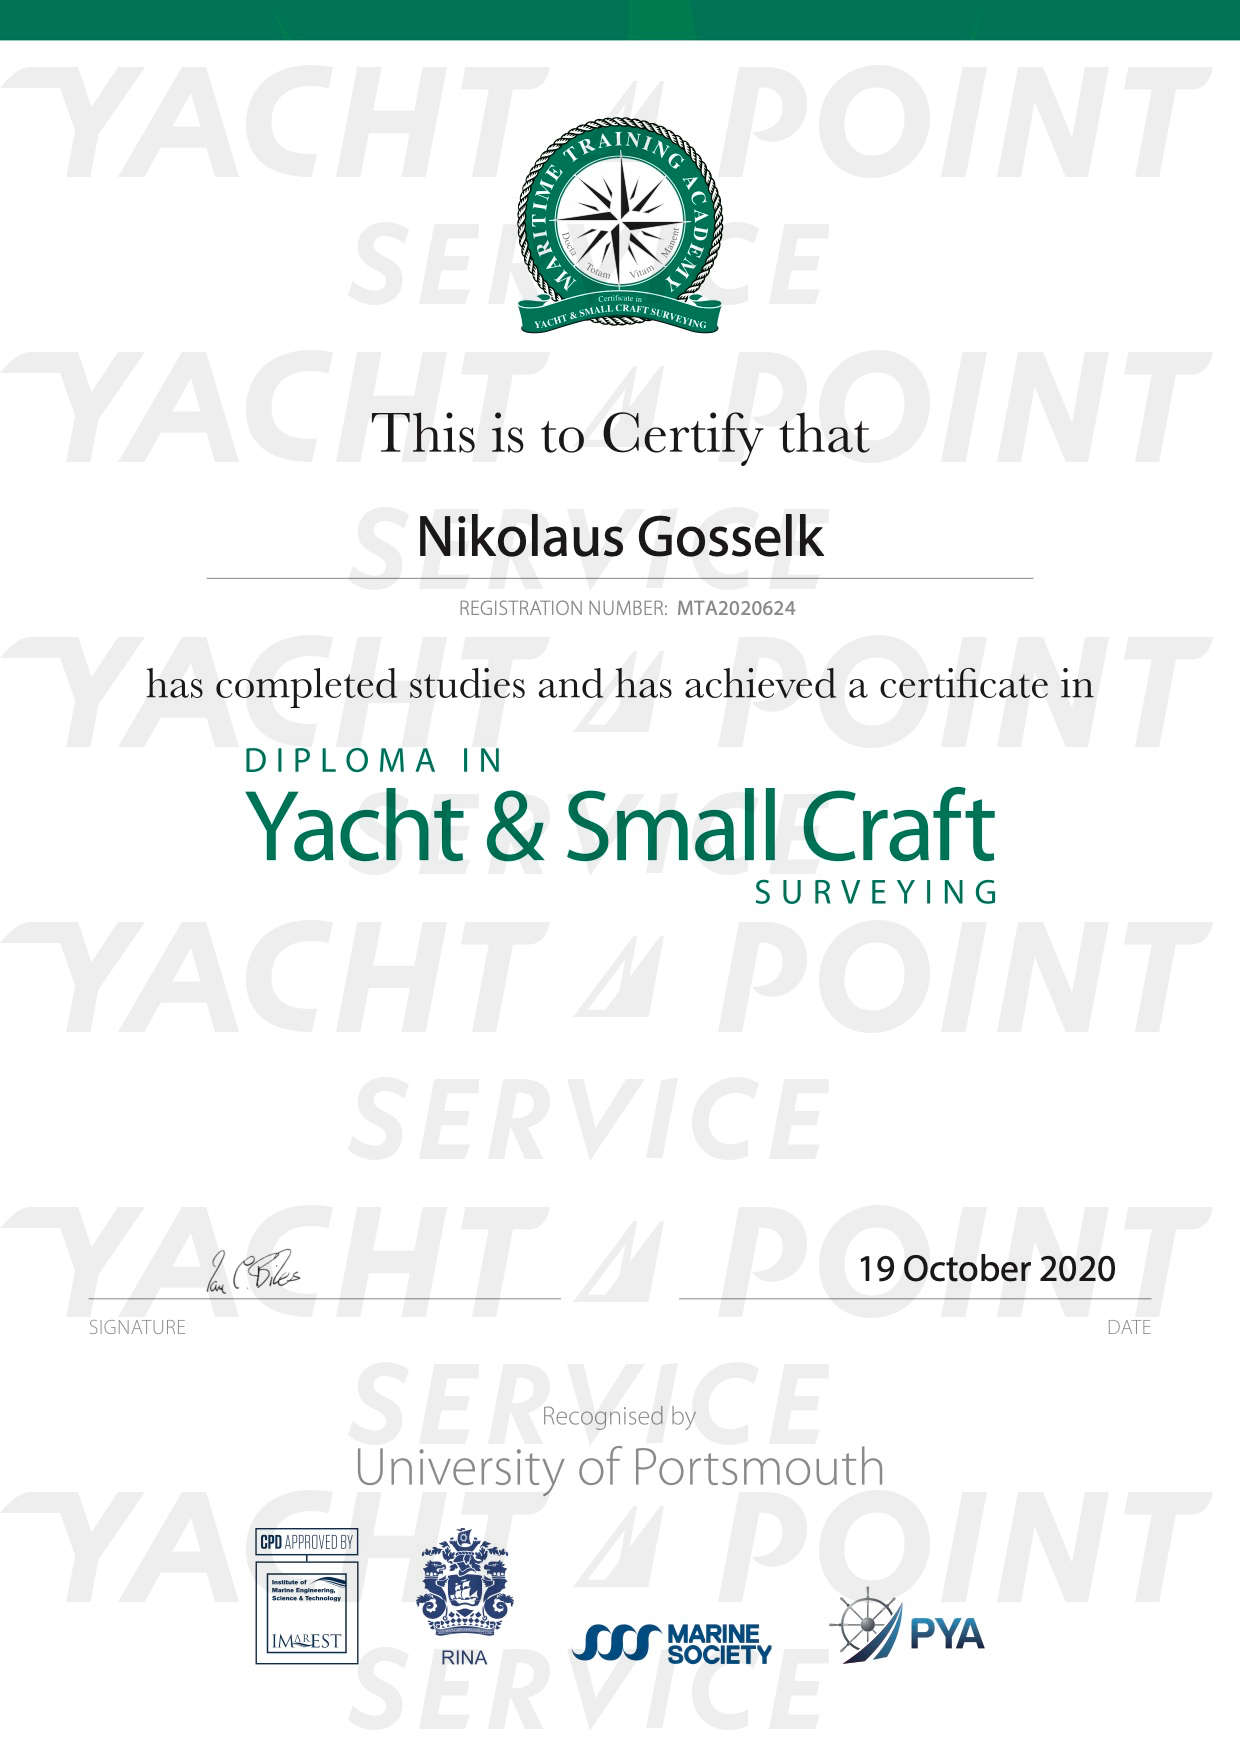 Certificate for Diploma in Yacht & Small Craft Surveying